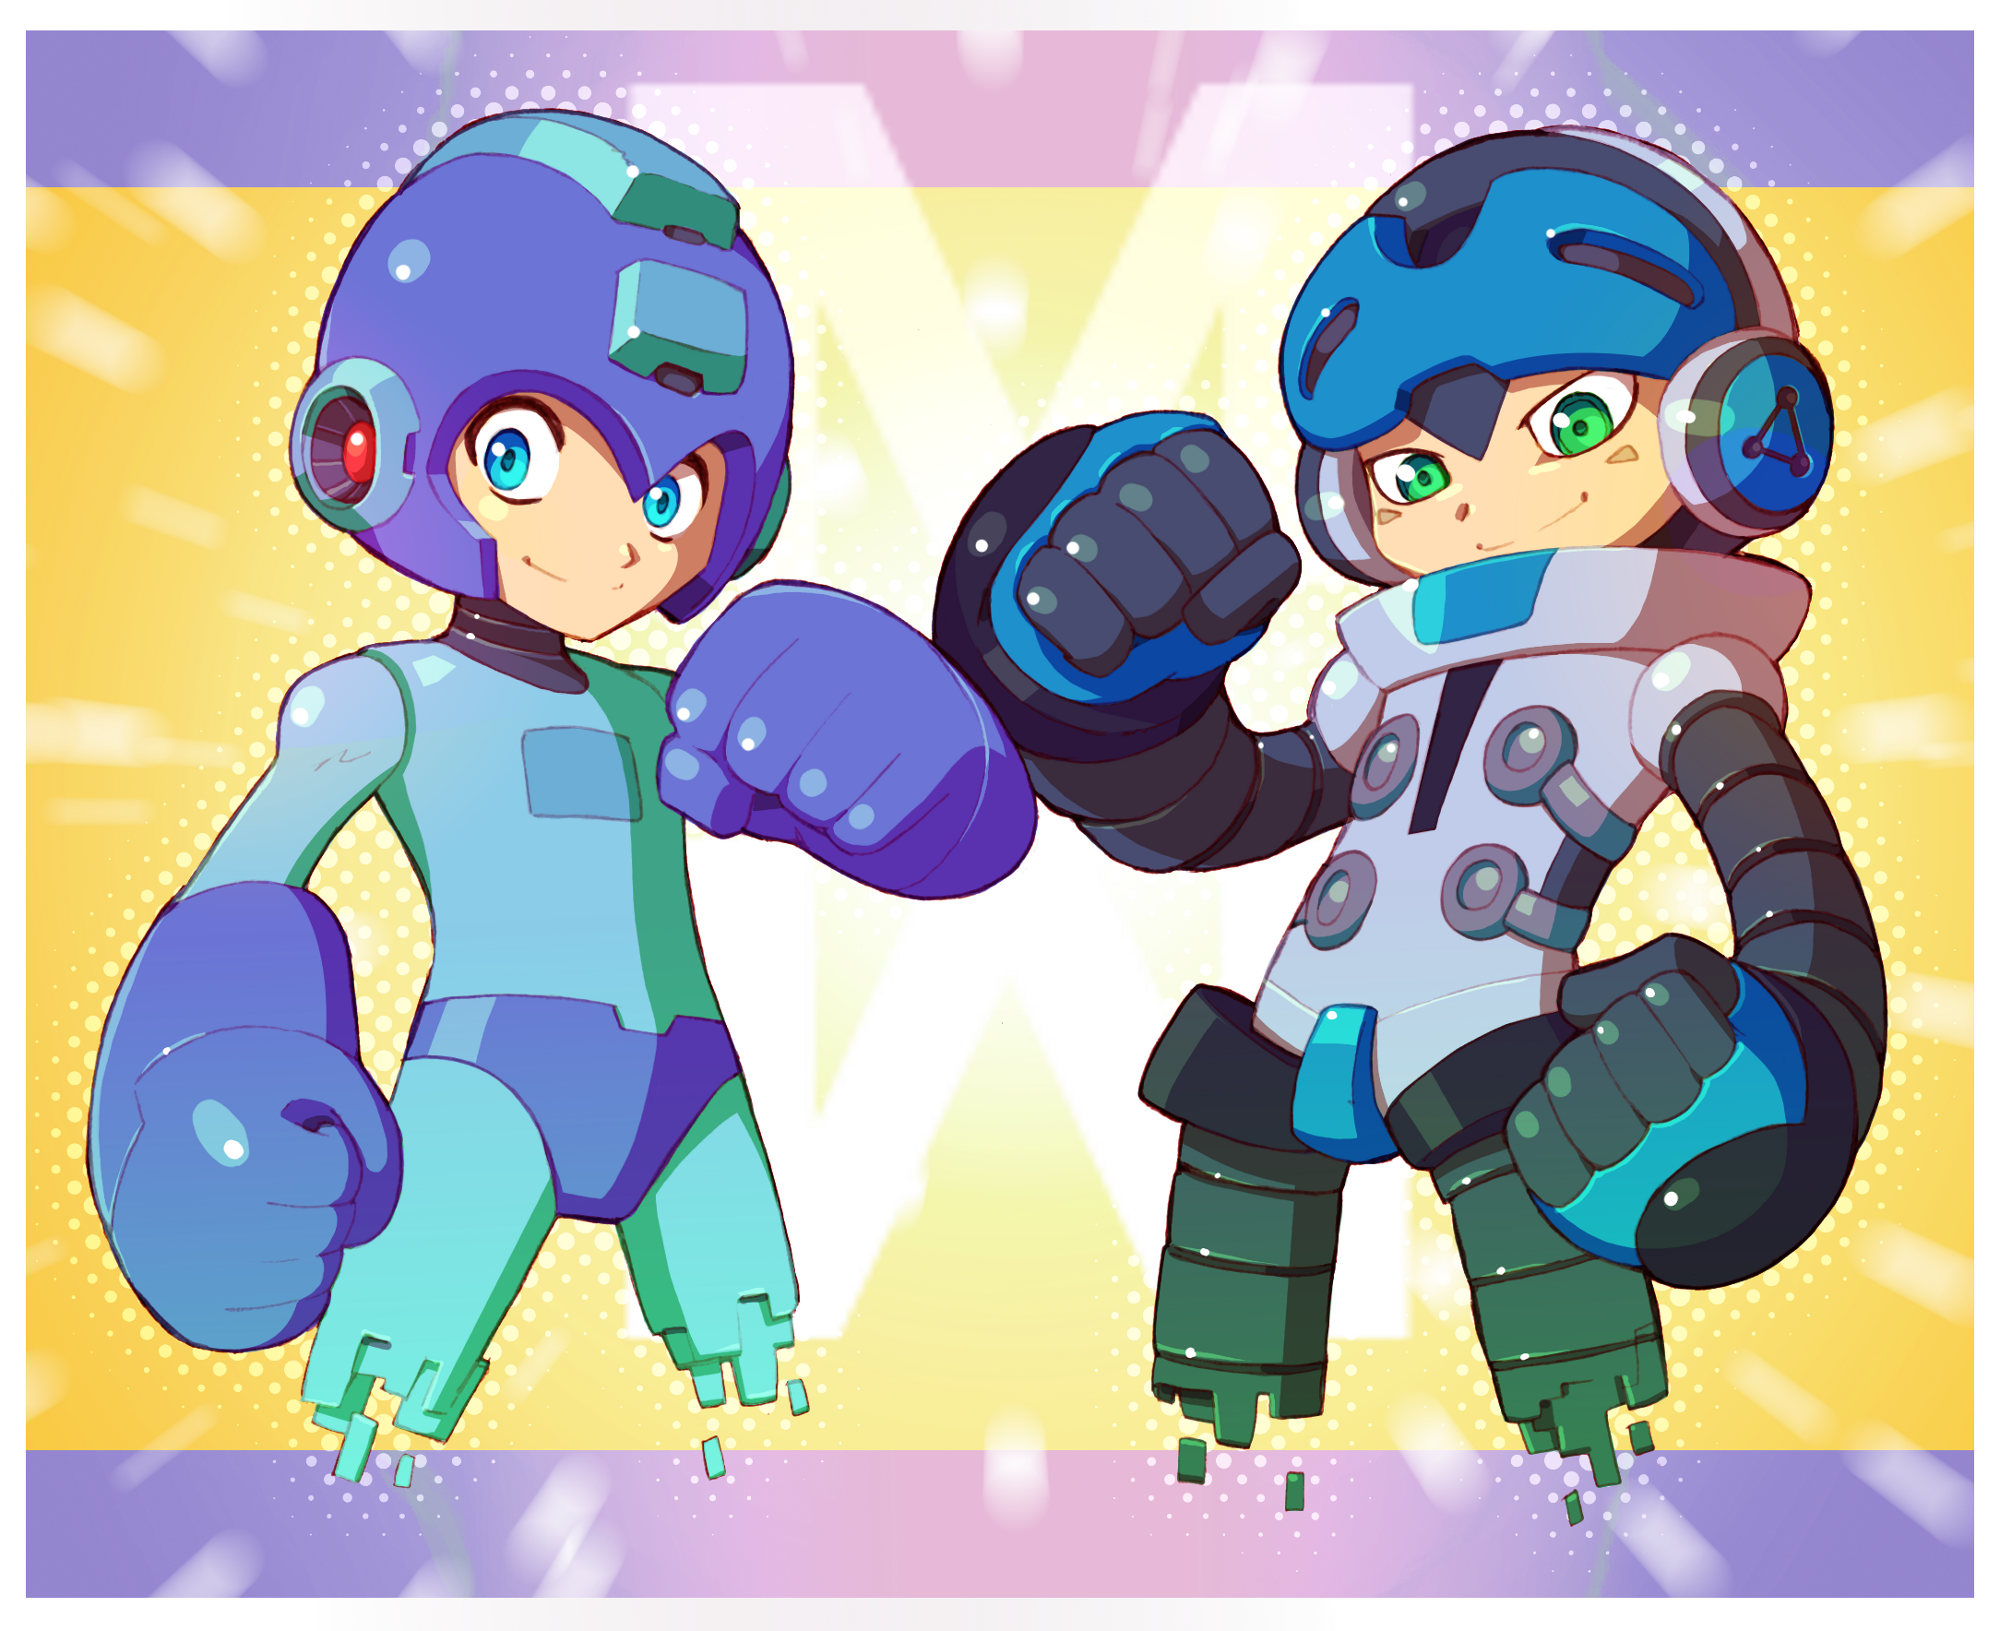 Mighty N.9 - New Blue Bomber